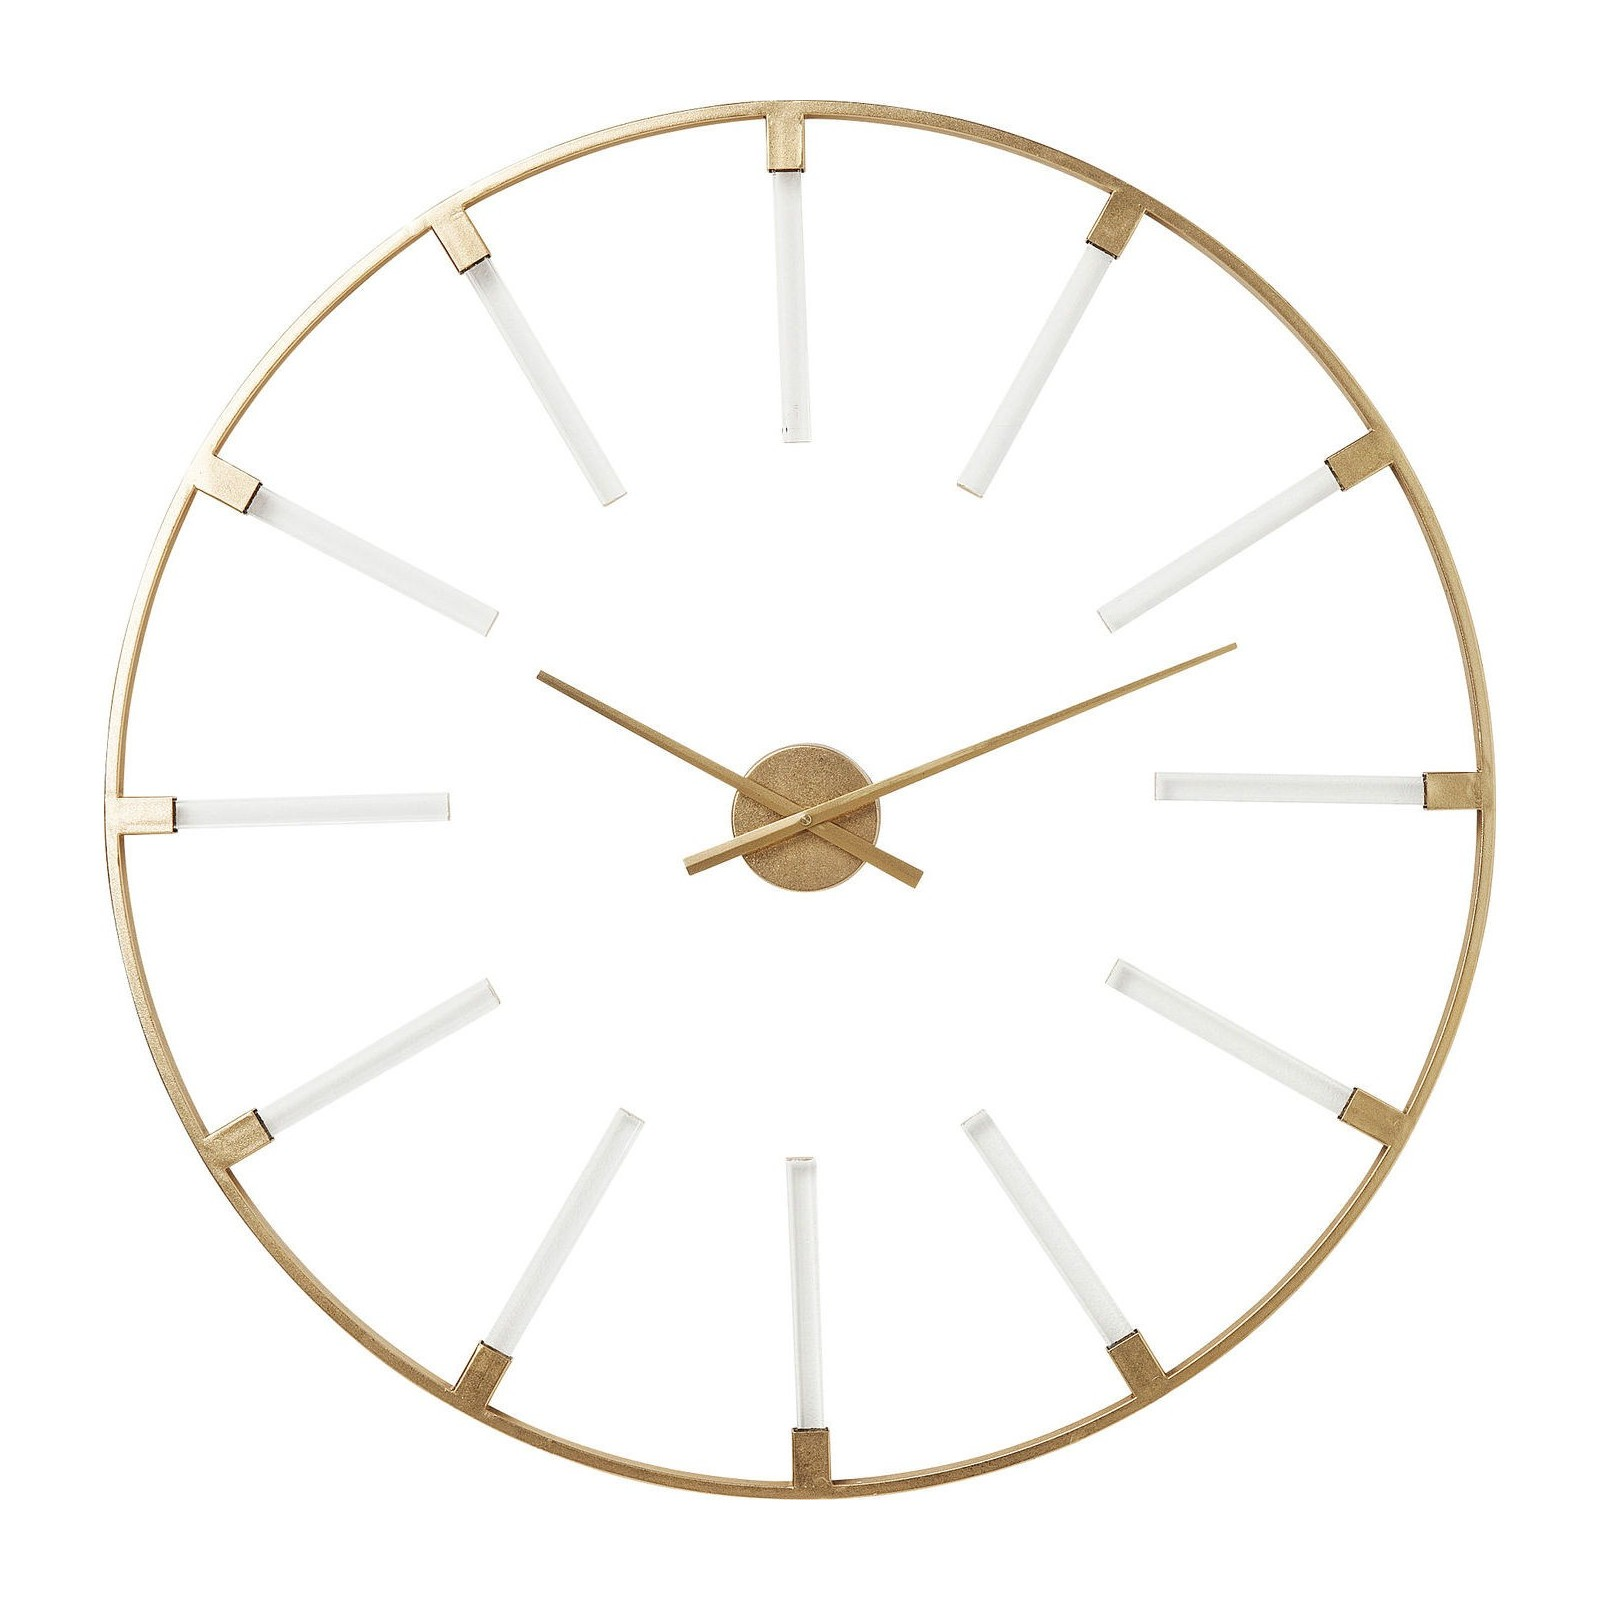 Horloge murale r tro dor e visible sticks kare design for Horloge salle de bain